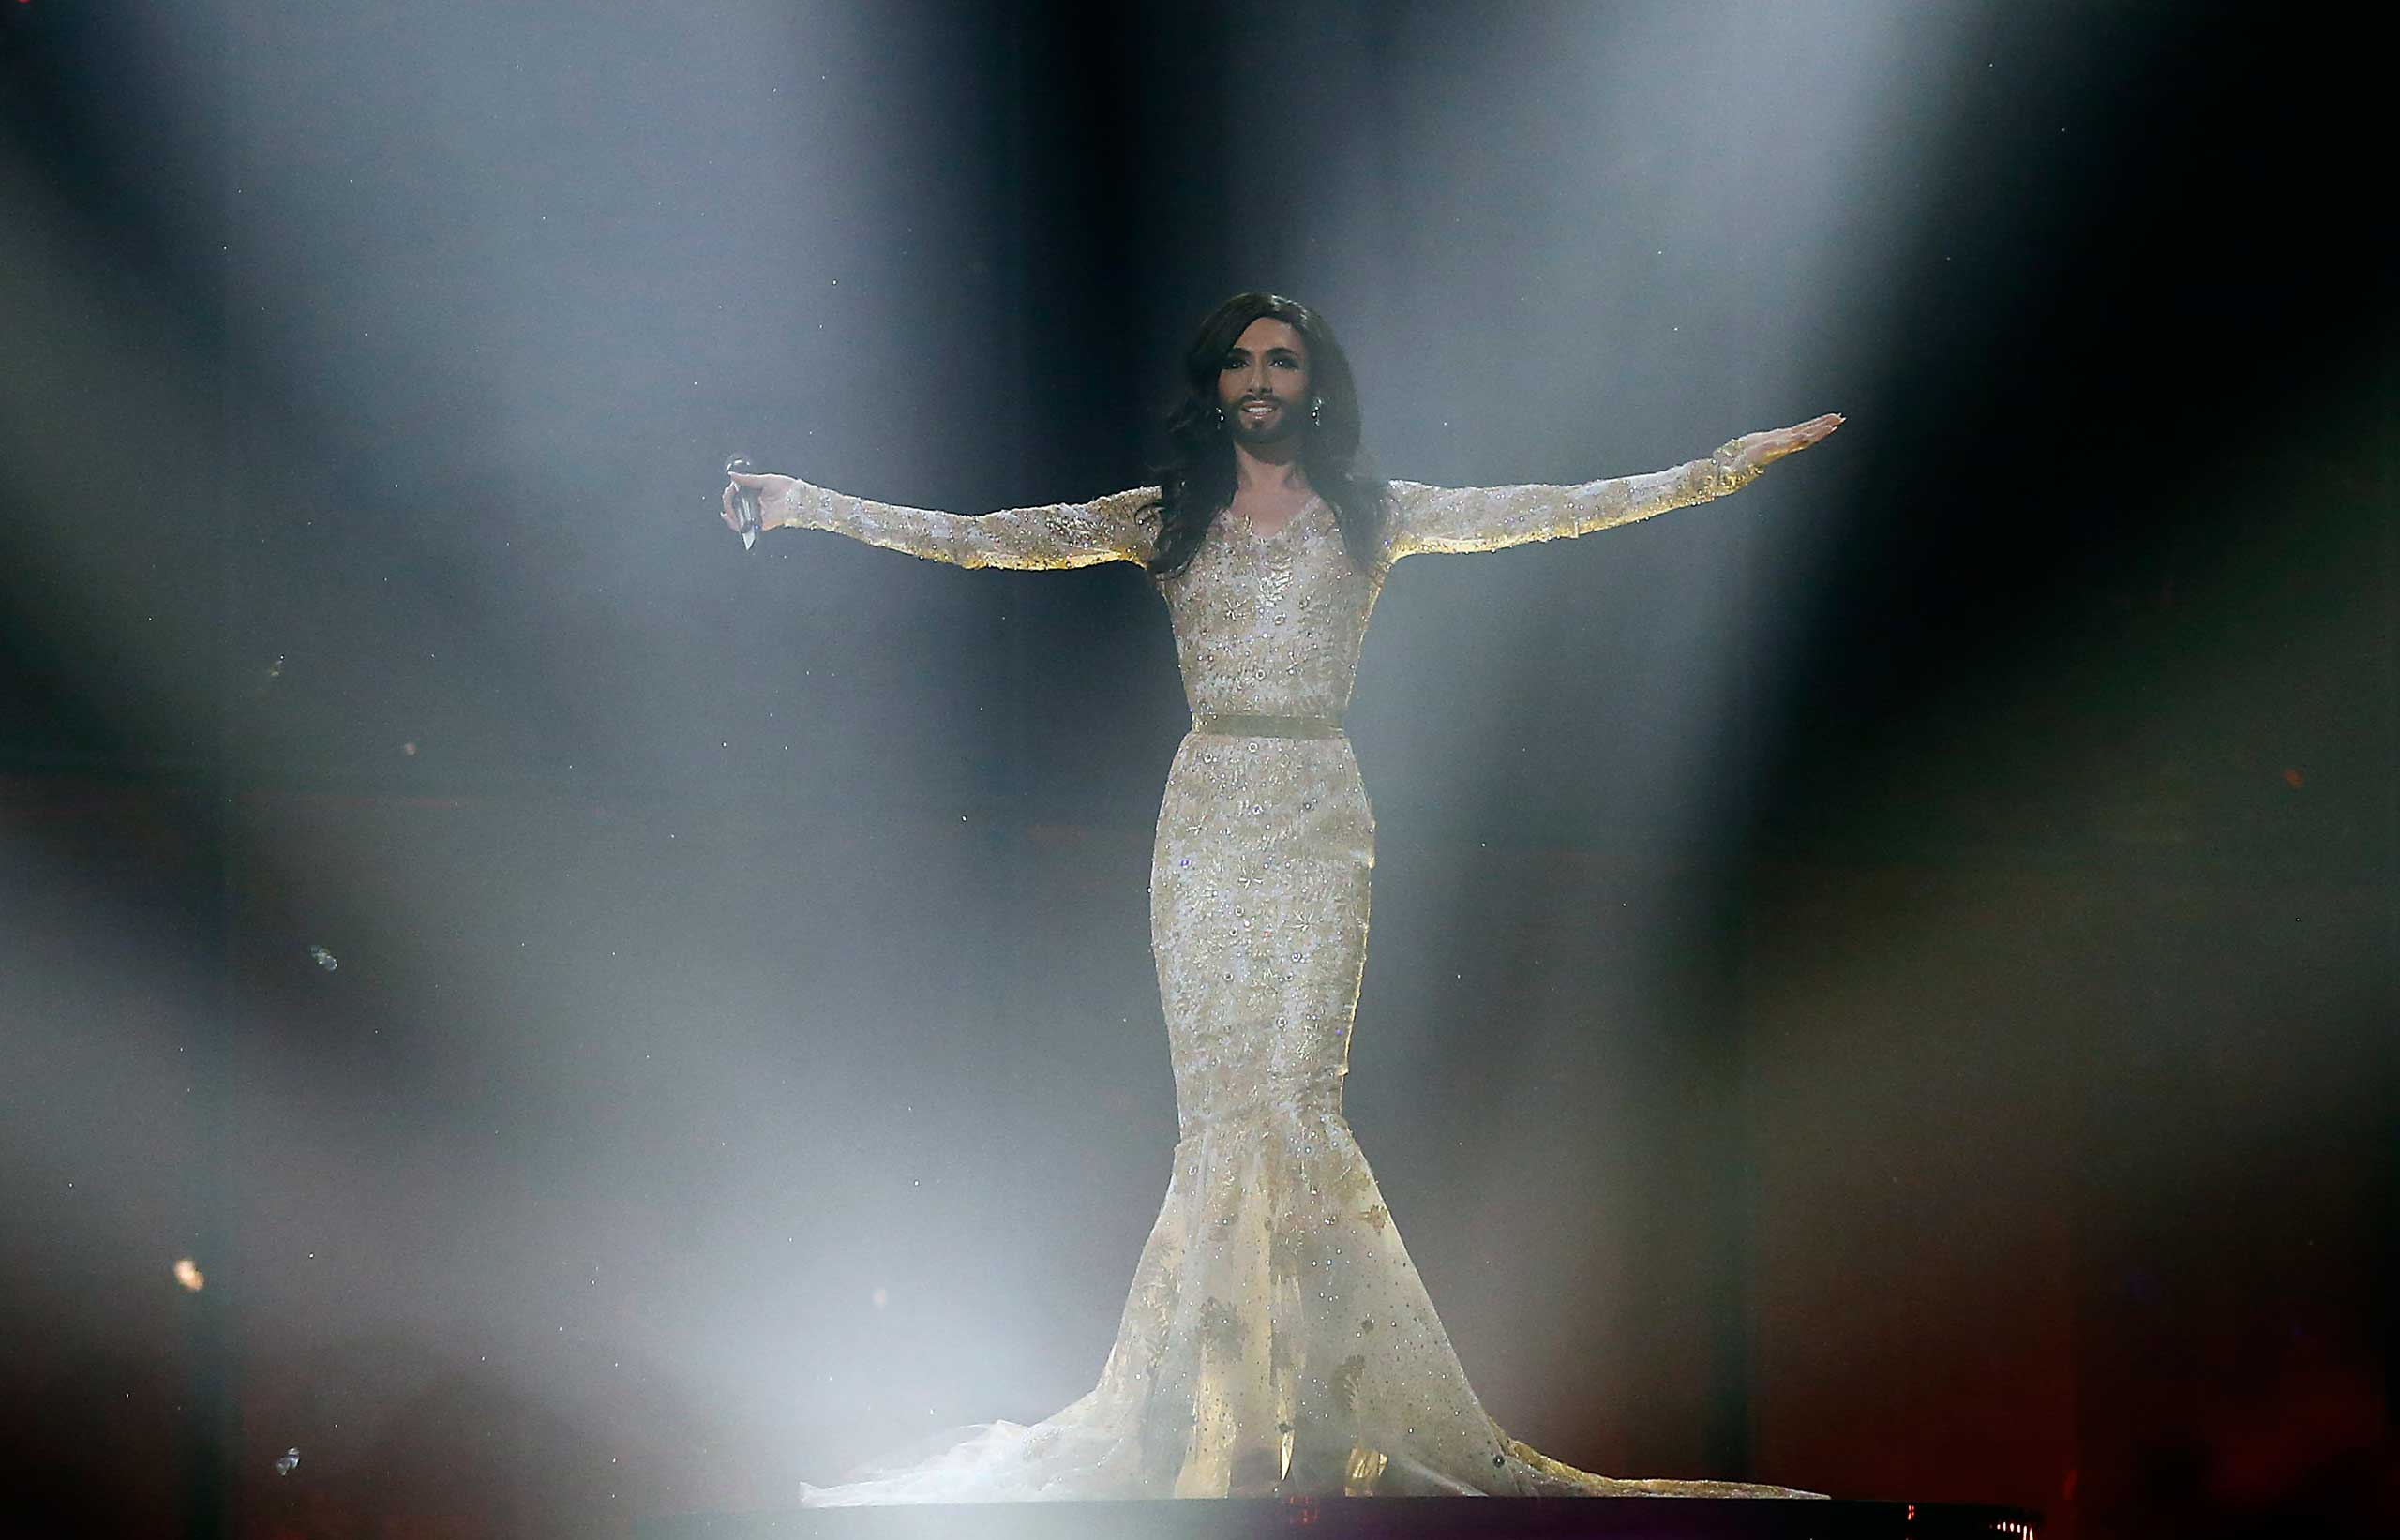 Singer Conchita Wurst is seen during a rehearsal for the second semifinal of the Eurovision Song Contest in Copenhagen, May 7, 2014.